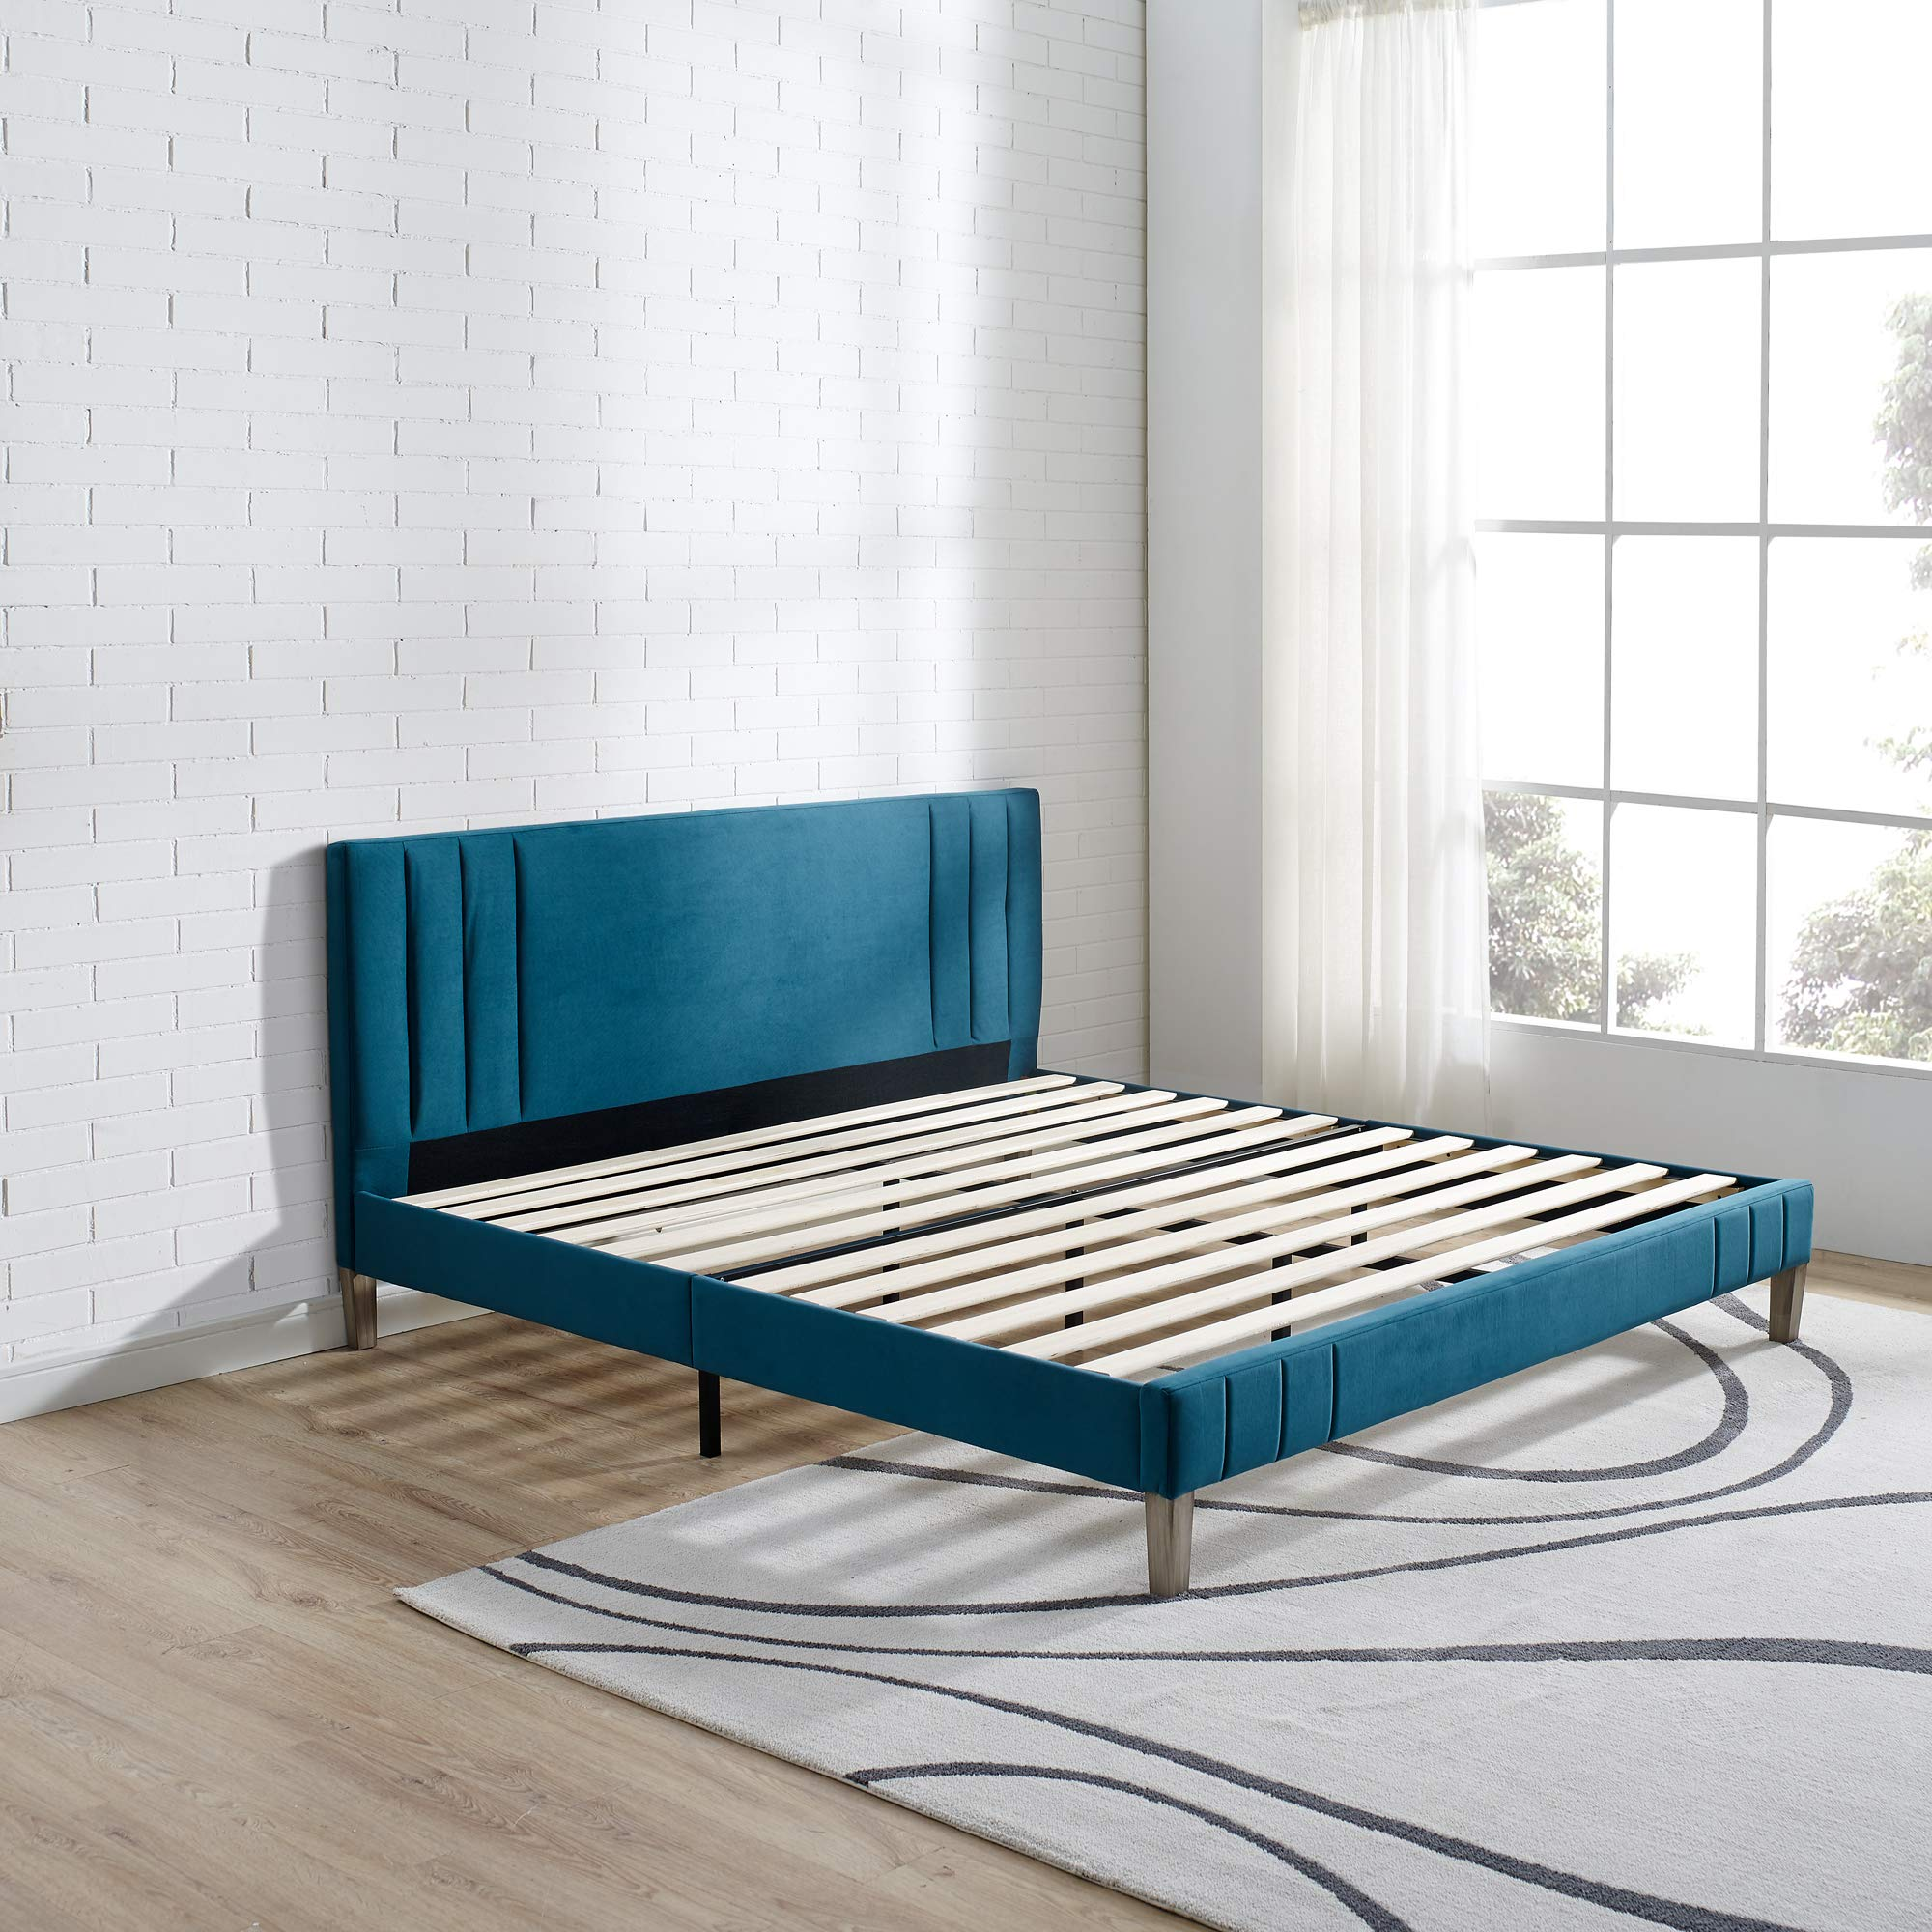 Classic Brands DeCoro Chicago Channel Tufted Upholstered Platform Bed | Headboard and Wood Frame with Wood Slat Support, King, Antonio Juniper by Classic Brands